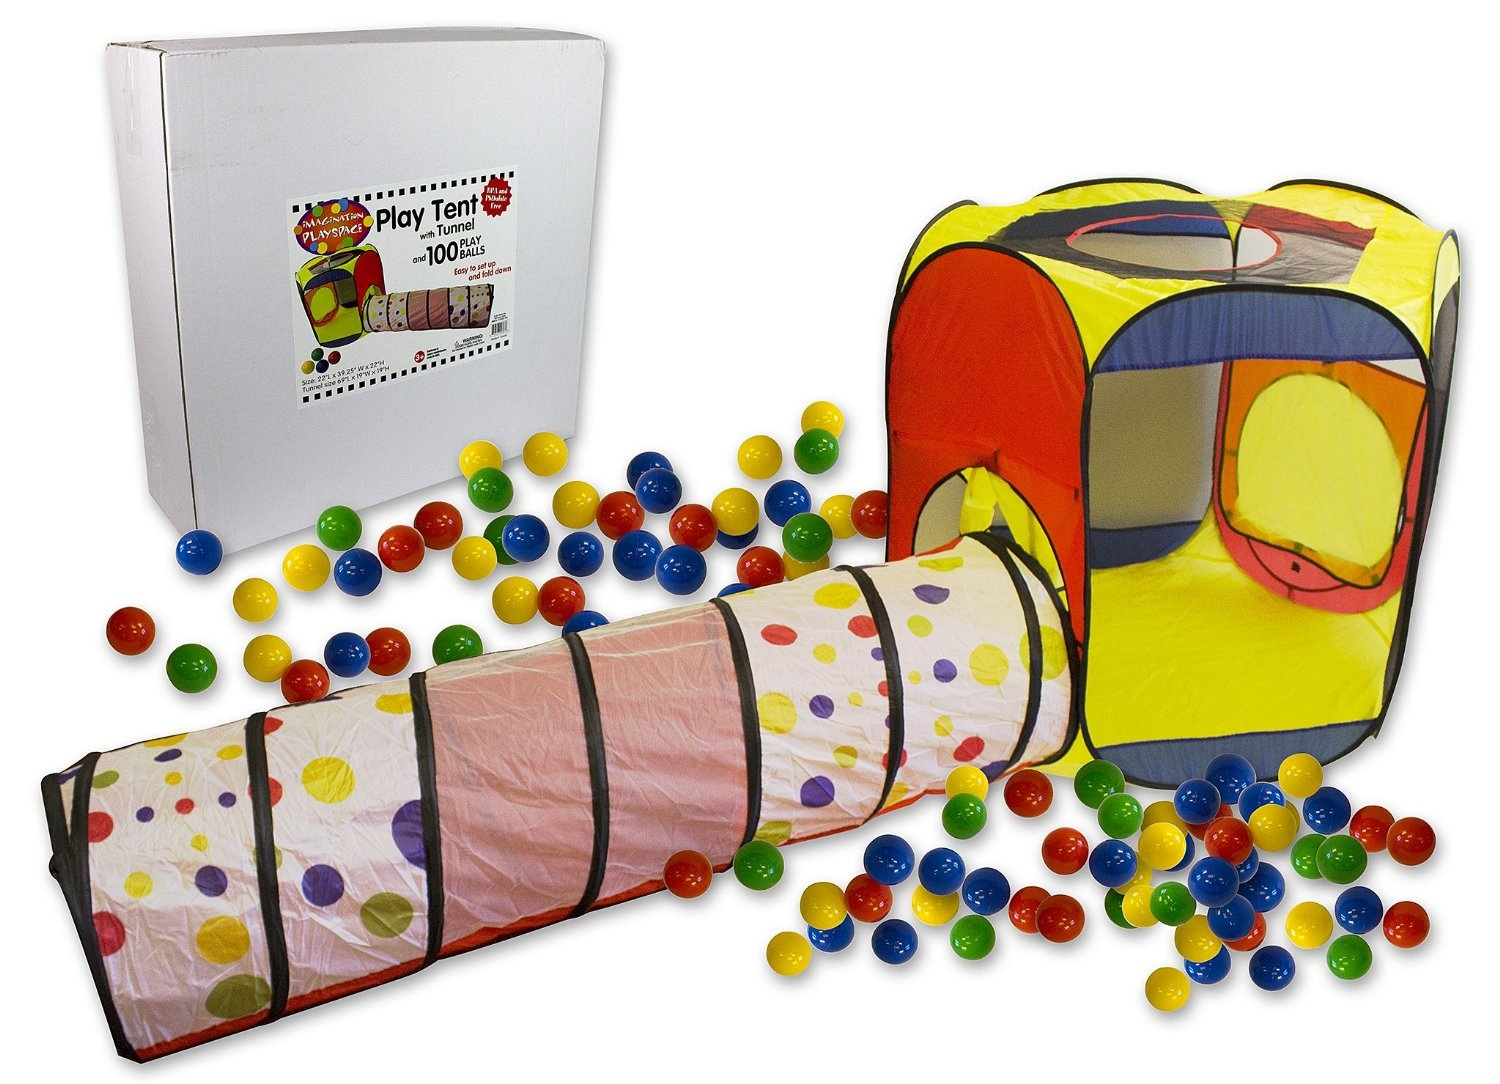 Toys For Toddlers : Best ball pit for toddlers different designs